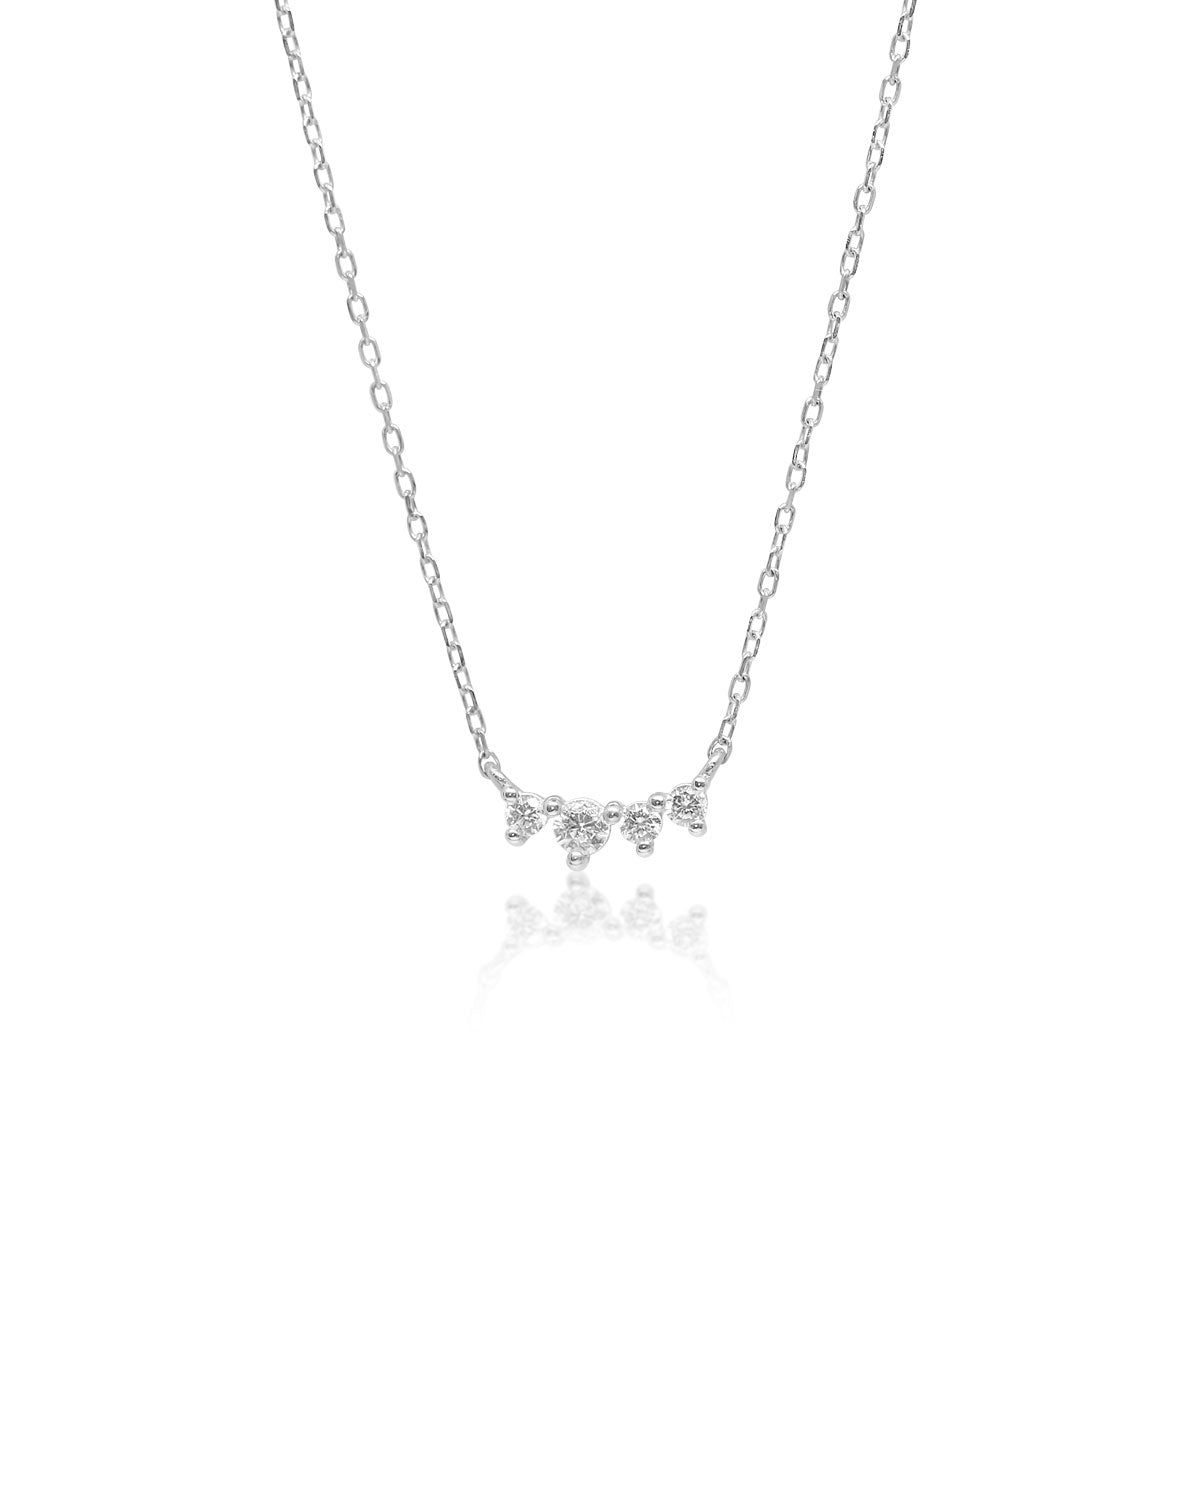 Tiara Necklace | Silver